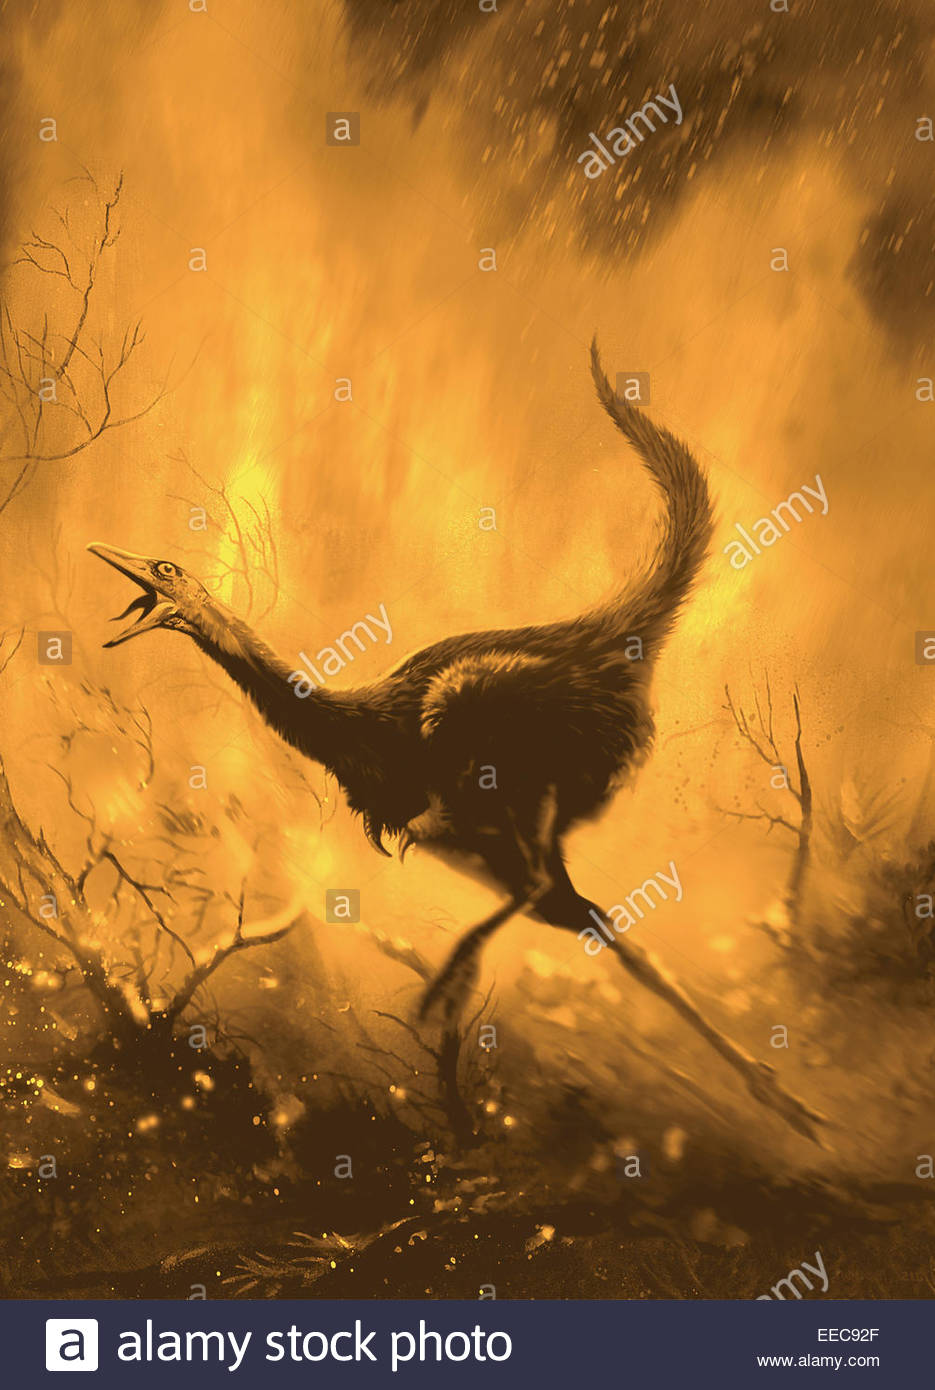 a frightend mononykus tries to escape a fiery forest fire mononykus was a bird